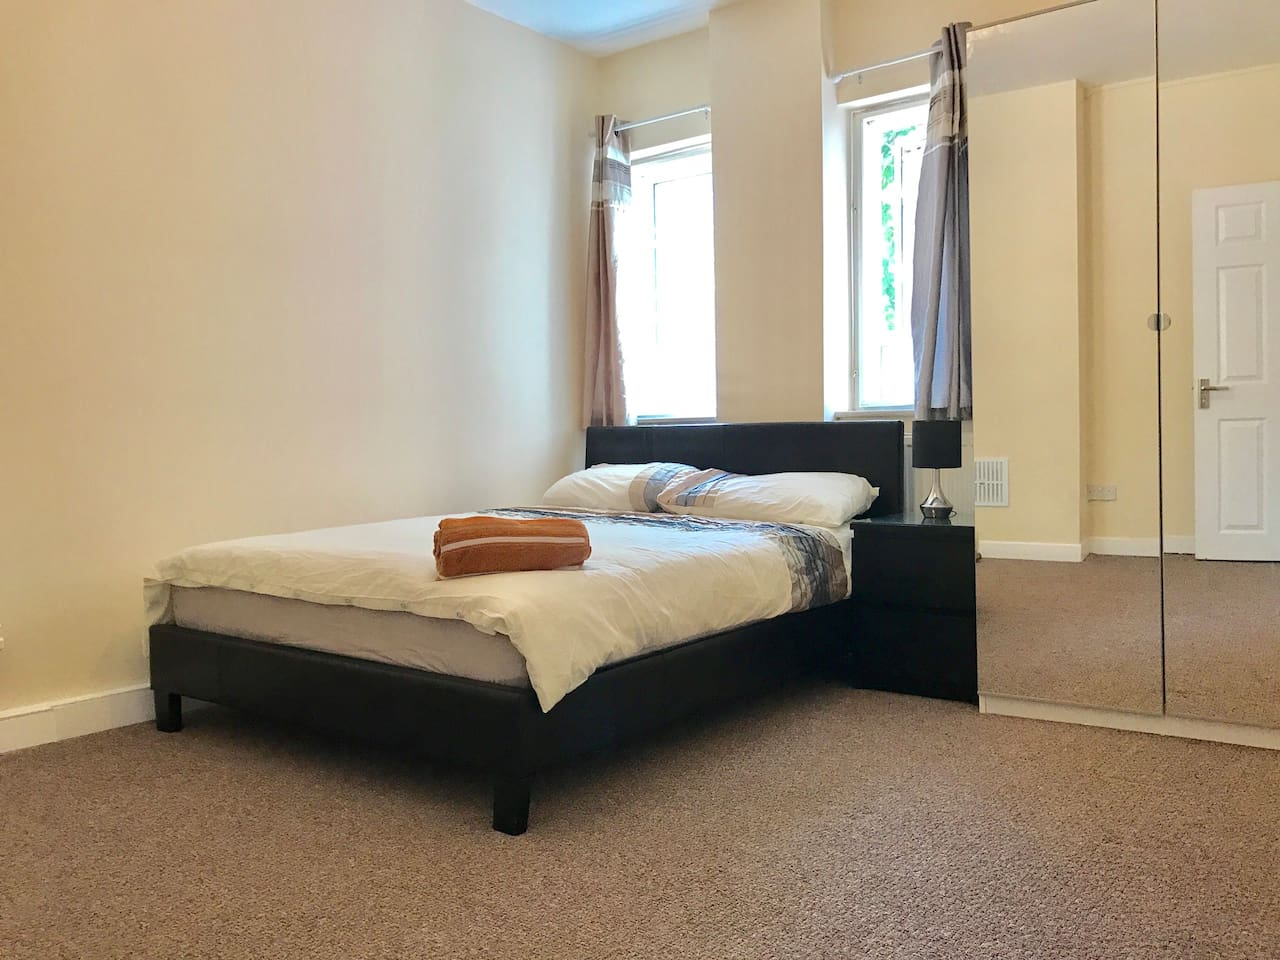 Double spacious room with plenty of space